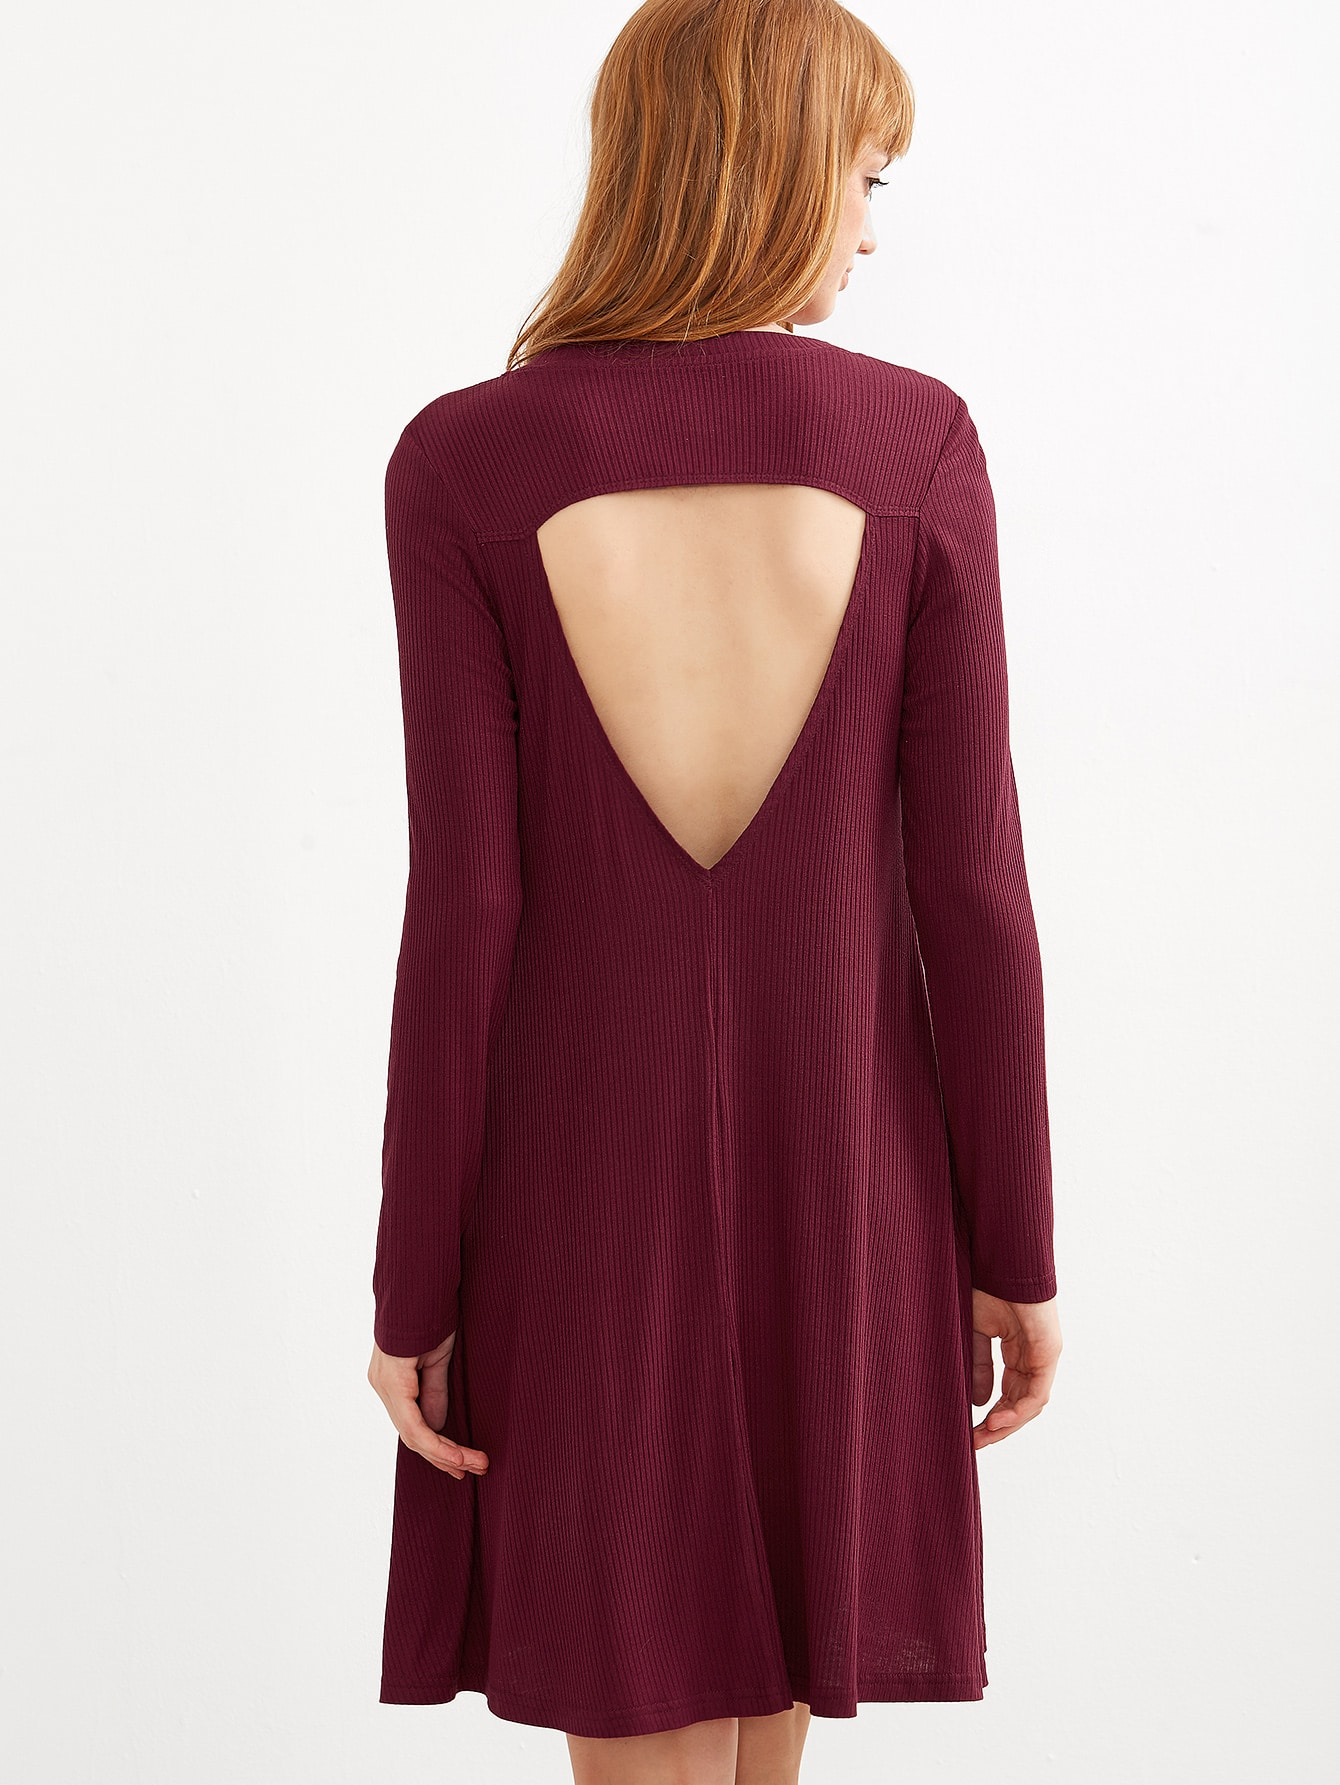 Burgundy Open Back Ribbed Swing DressBurgundy Open Back Ribbed Swing Dress<br><br>color: Burgundy<br>size: M,S,XS